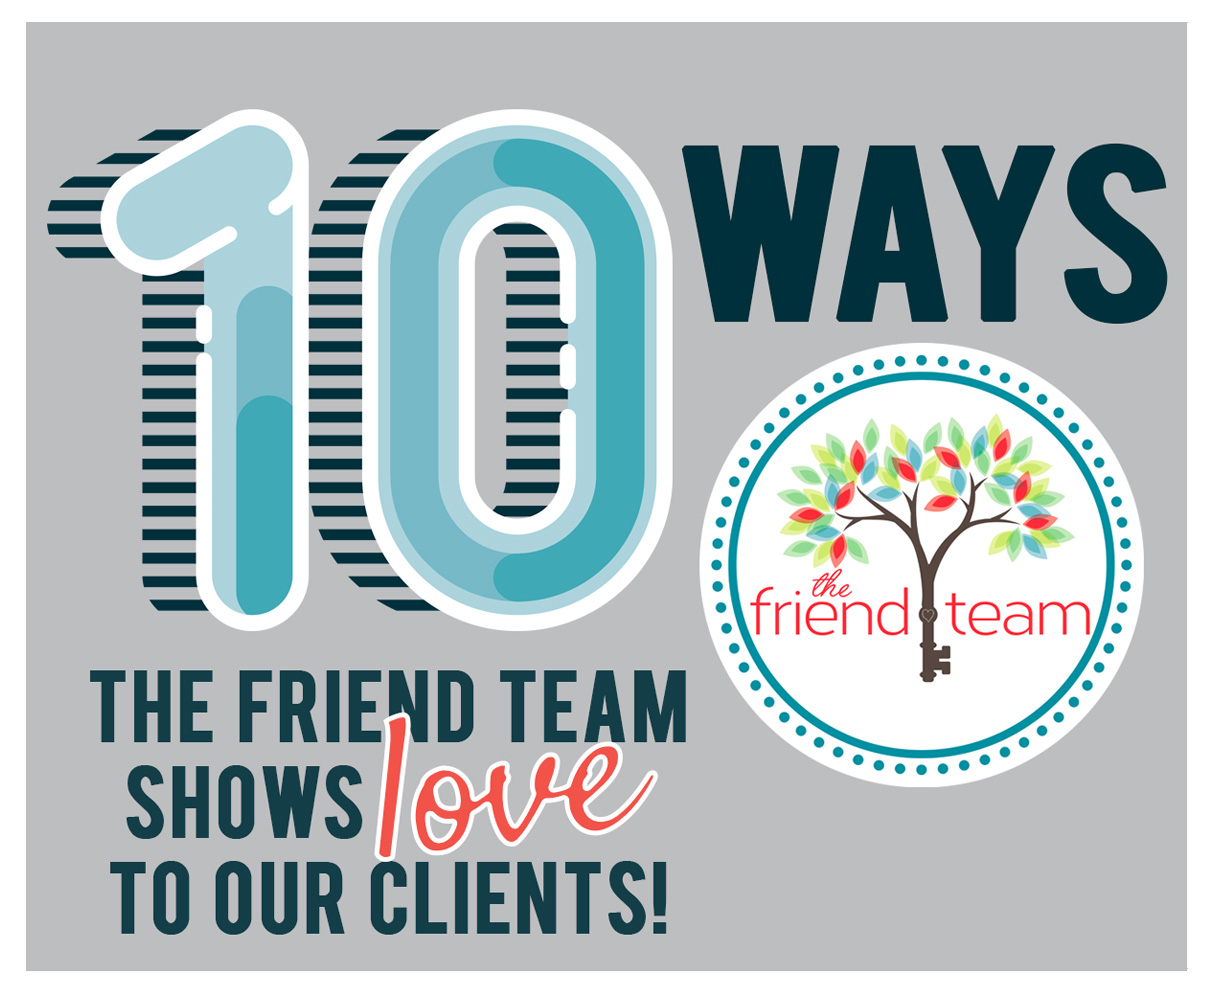 10 Ways The Friend Team Shows Love To Clients